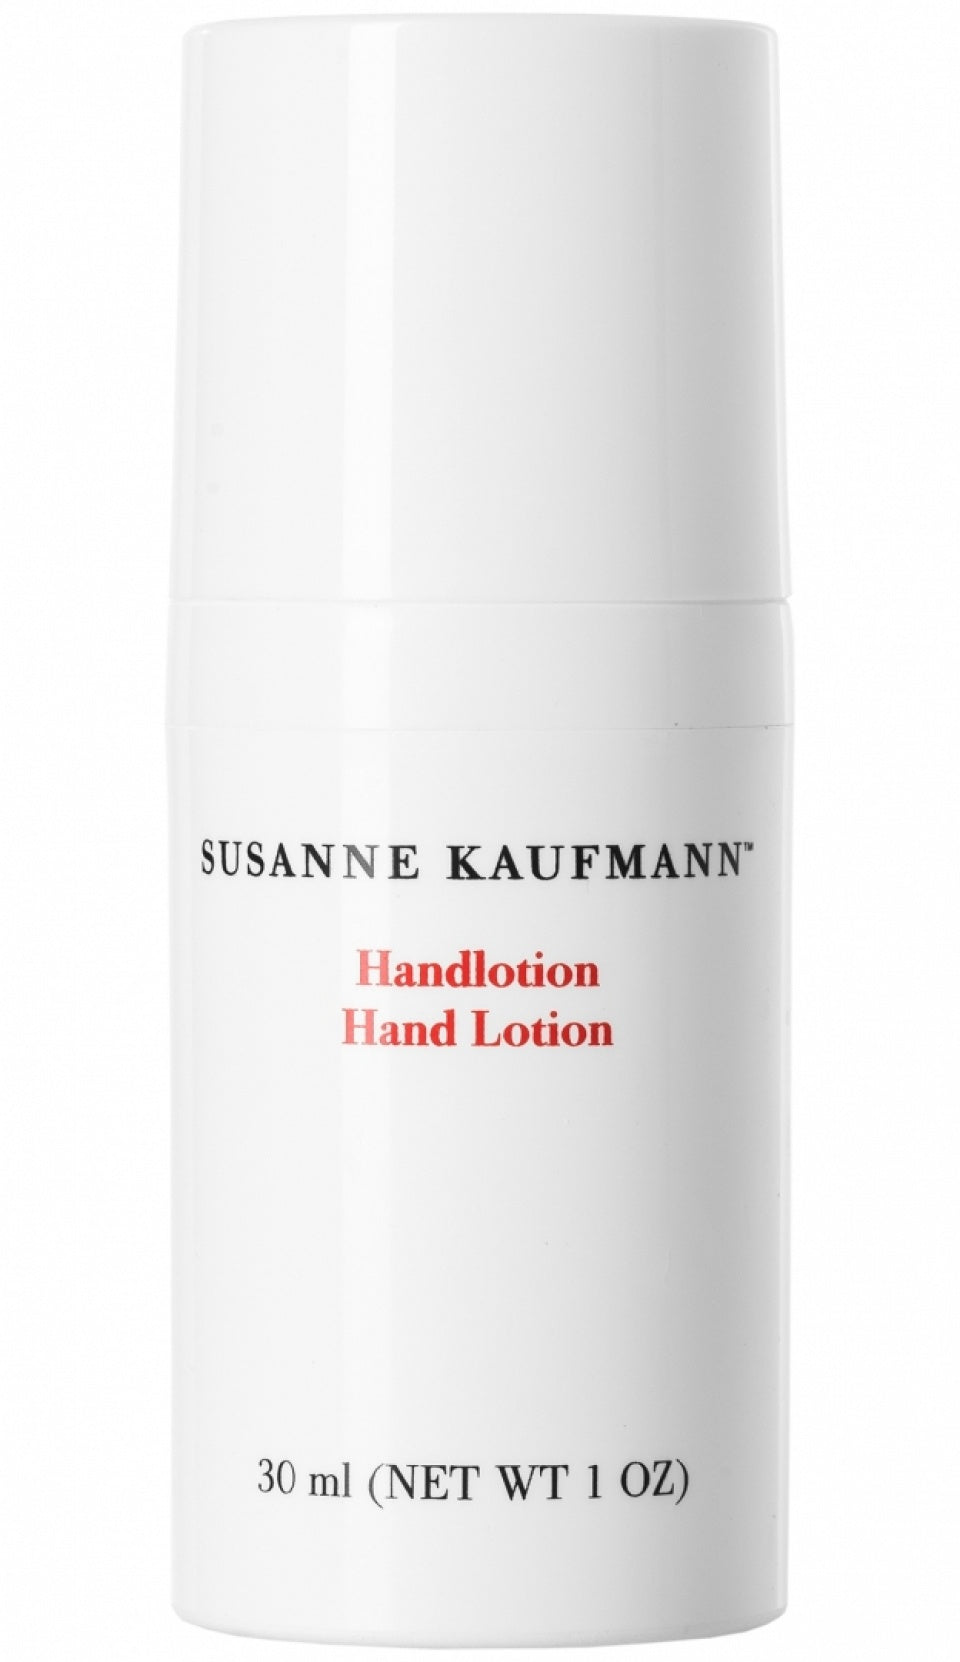 susanne kaufmann | hand lotion[product_type ]susanne kaufmann - Kiss and Makeup